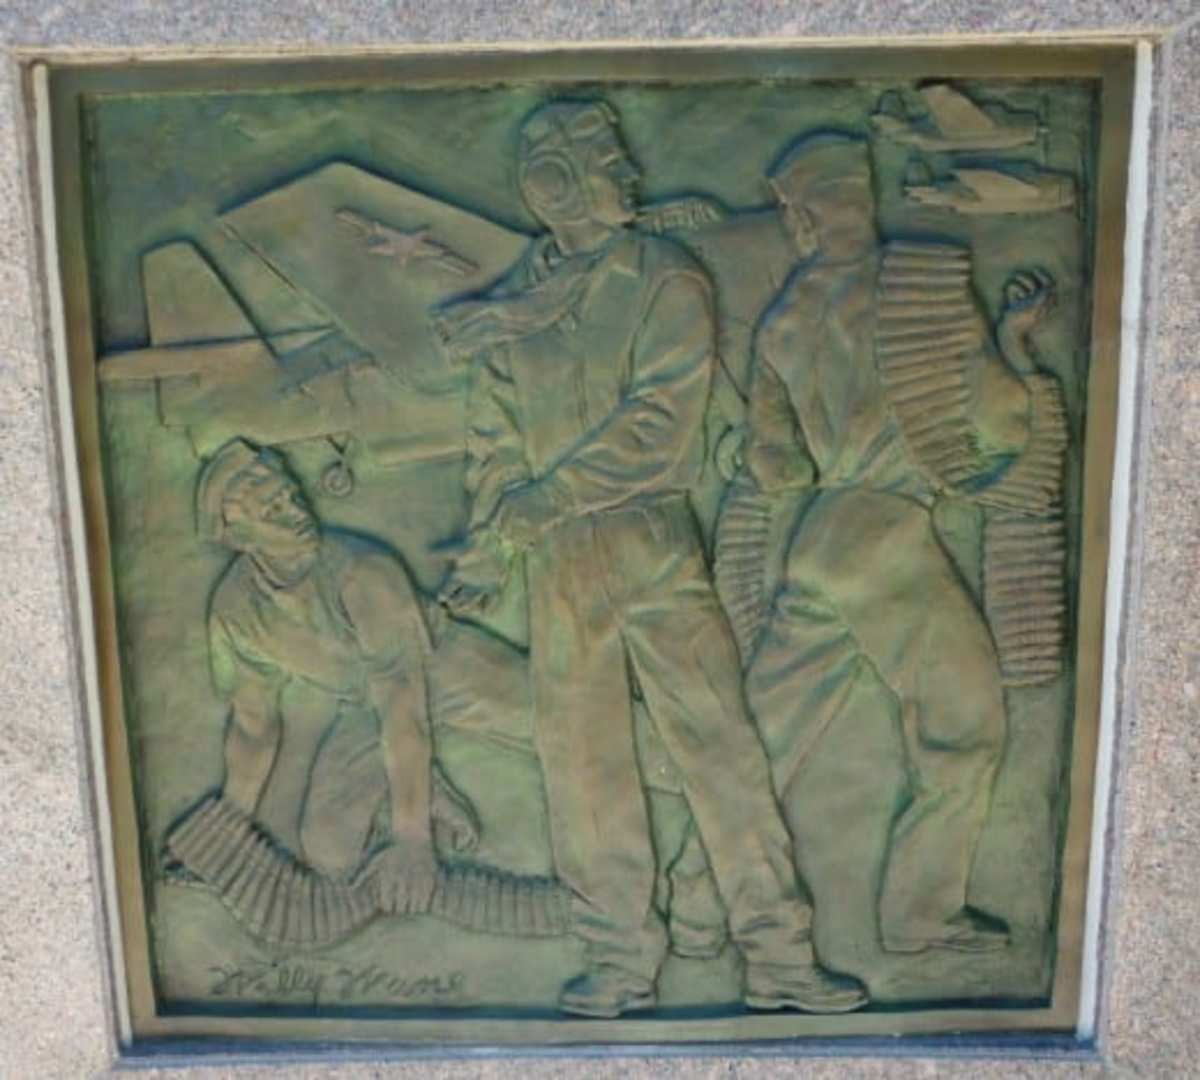 Bas relief showing military service to country.